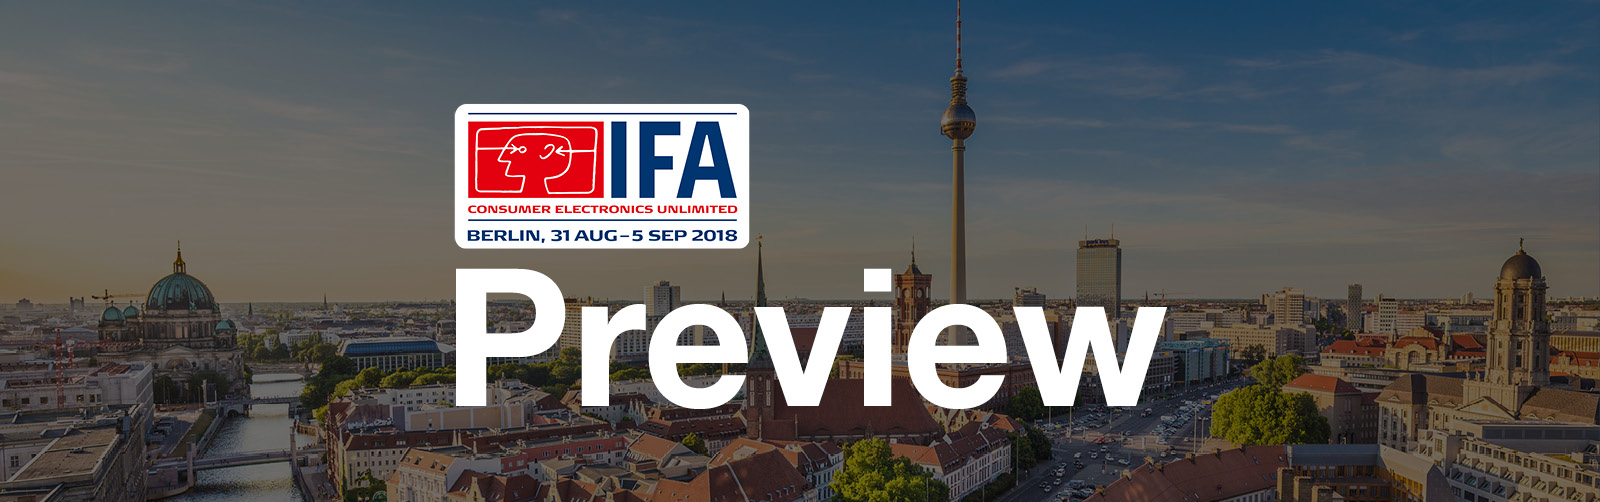 IFA_Preview2.jpg